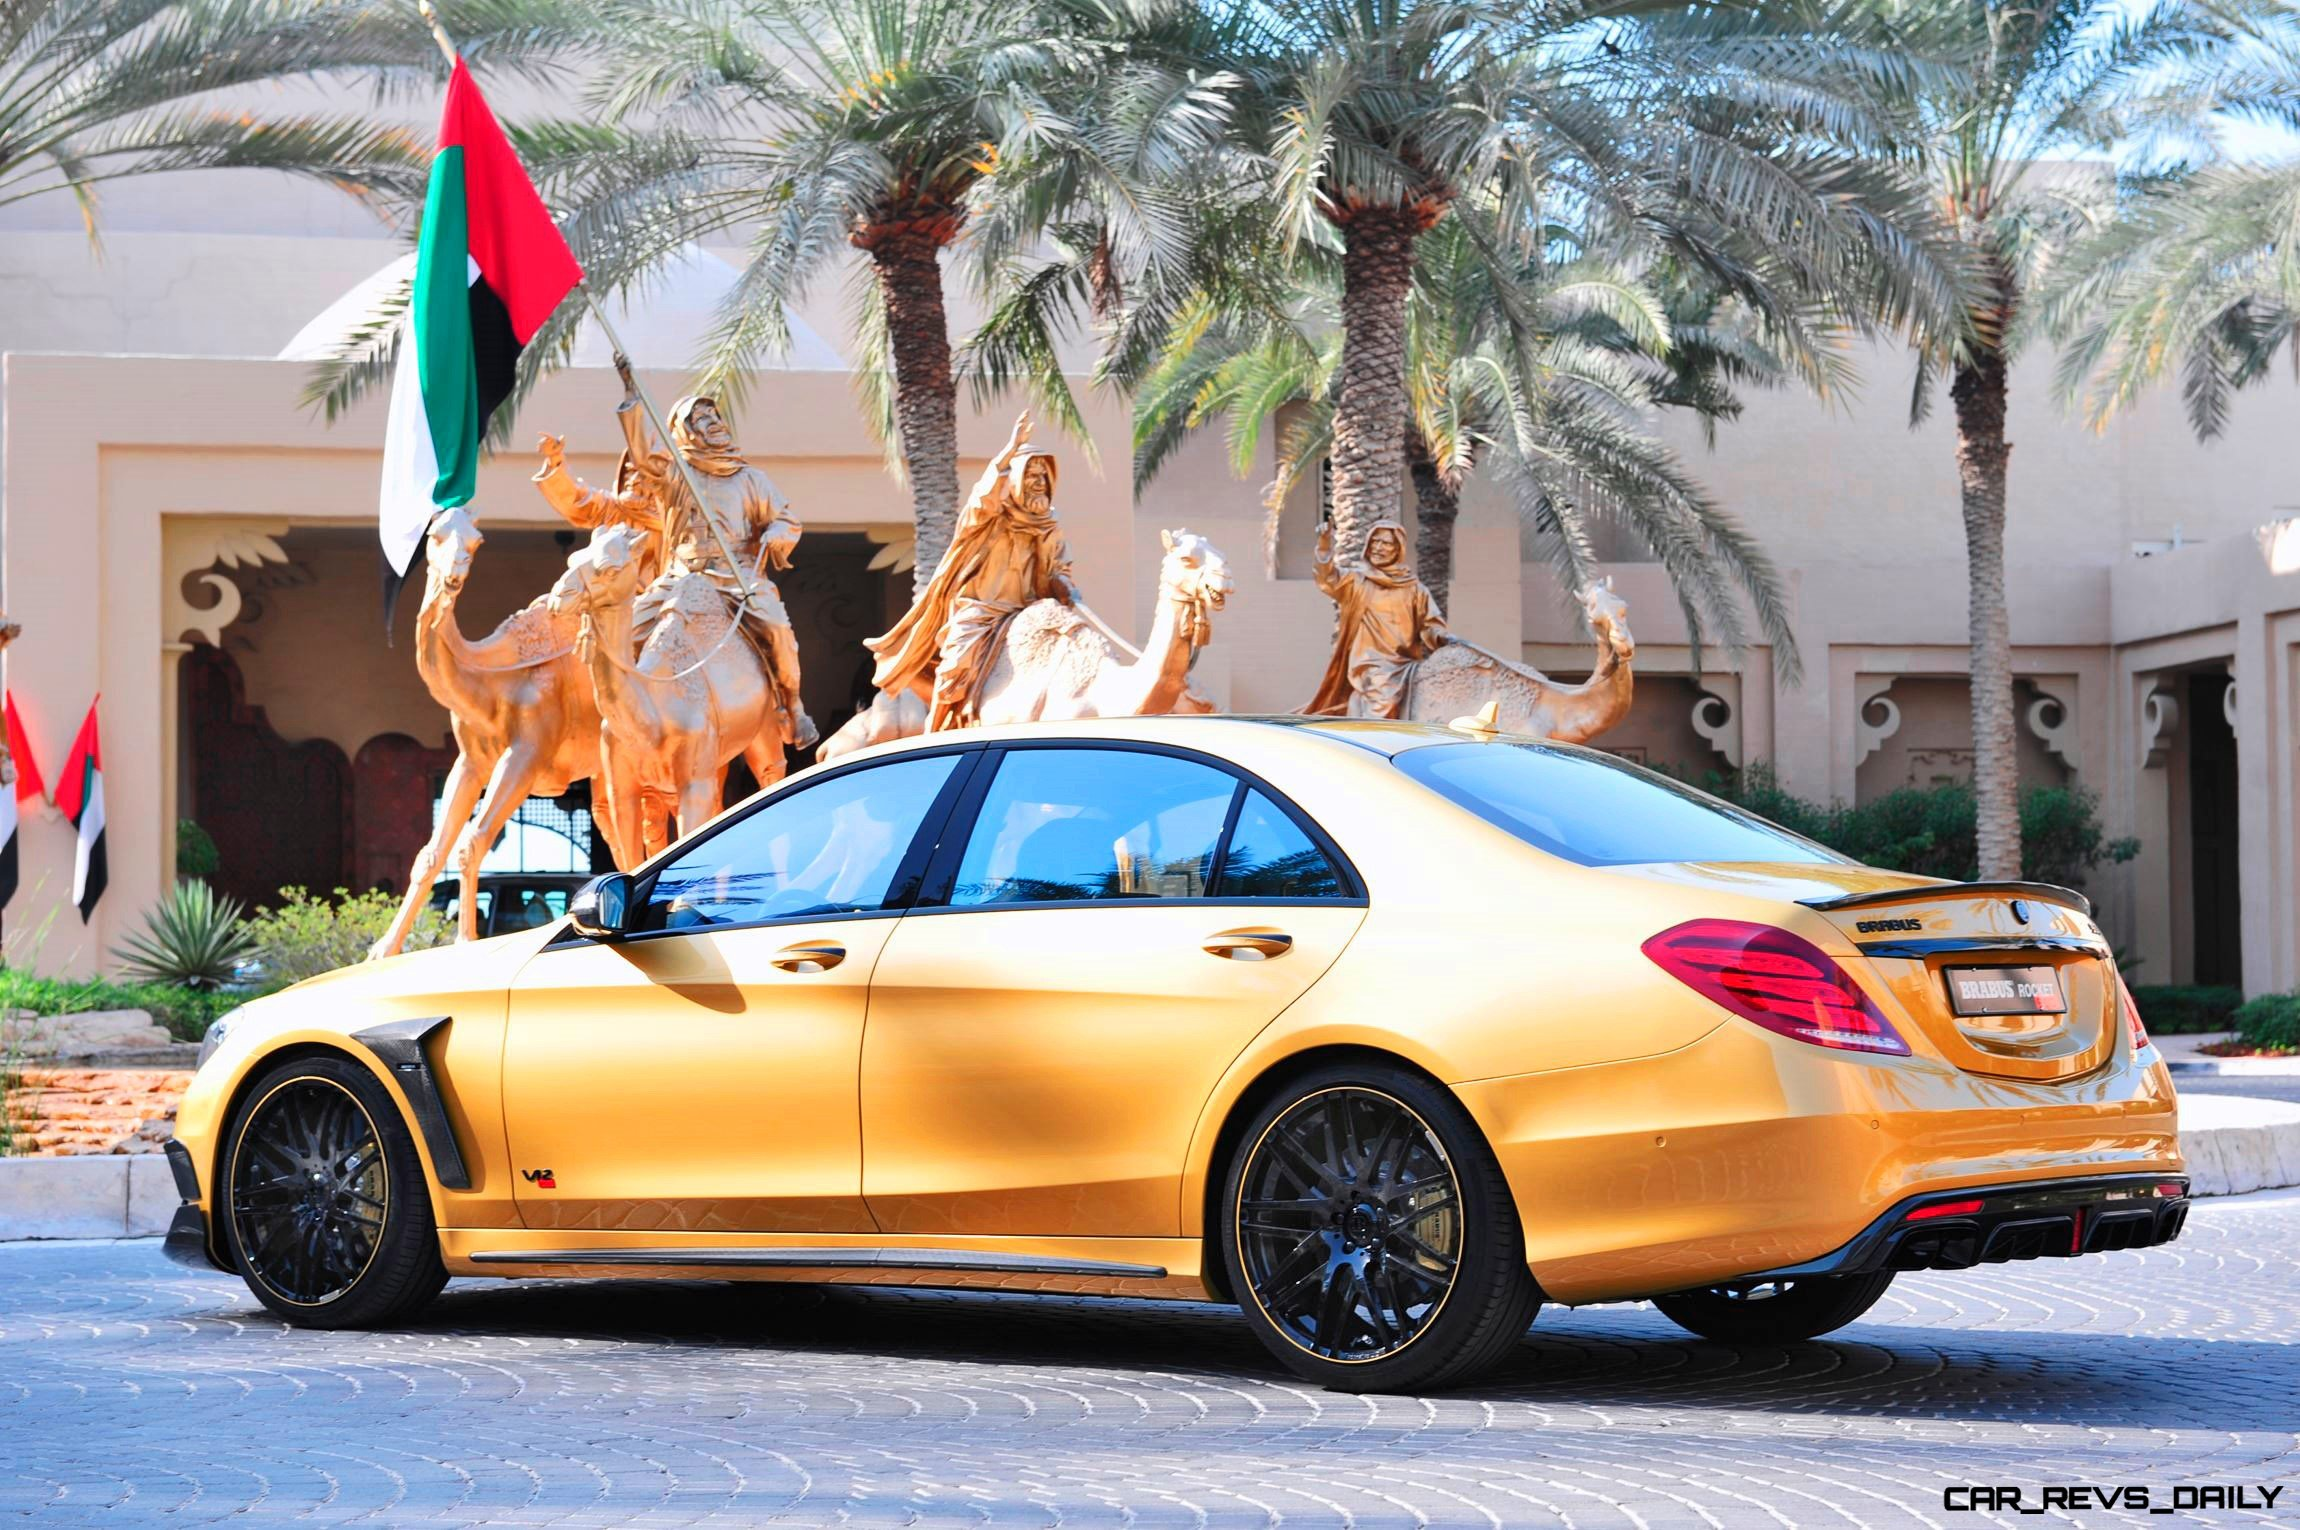 BRABUS Rocket 900 Desert Gold Edition 7